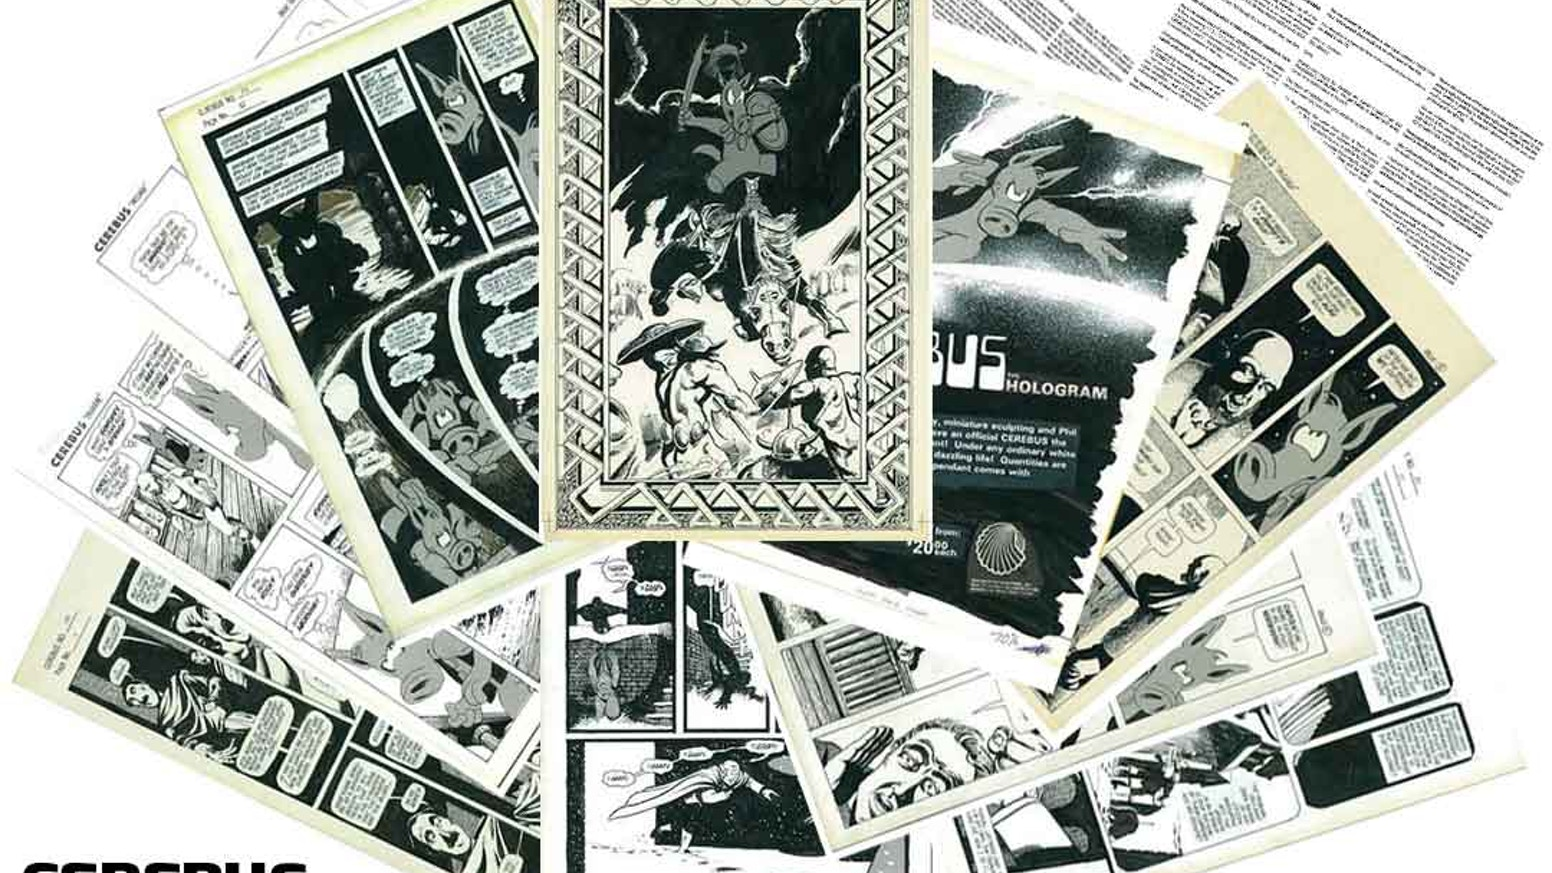 A FOLIO OF THE TEN EARLIEST PAGES IN THE CEREBUS ARCHIVE WITH COMMENTARY BY DAVE SIM